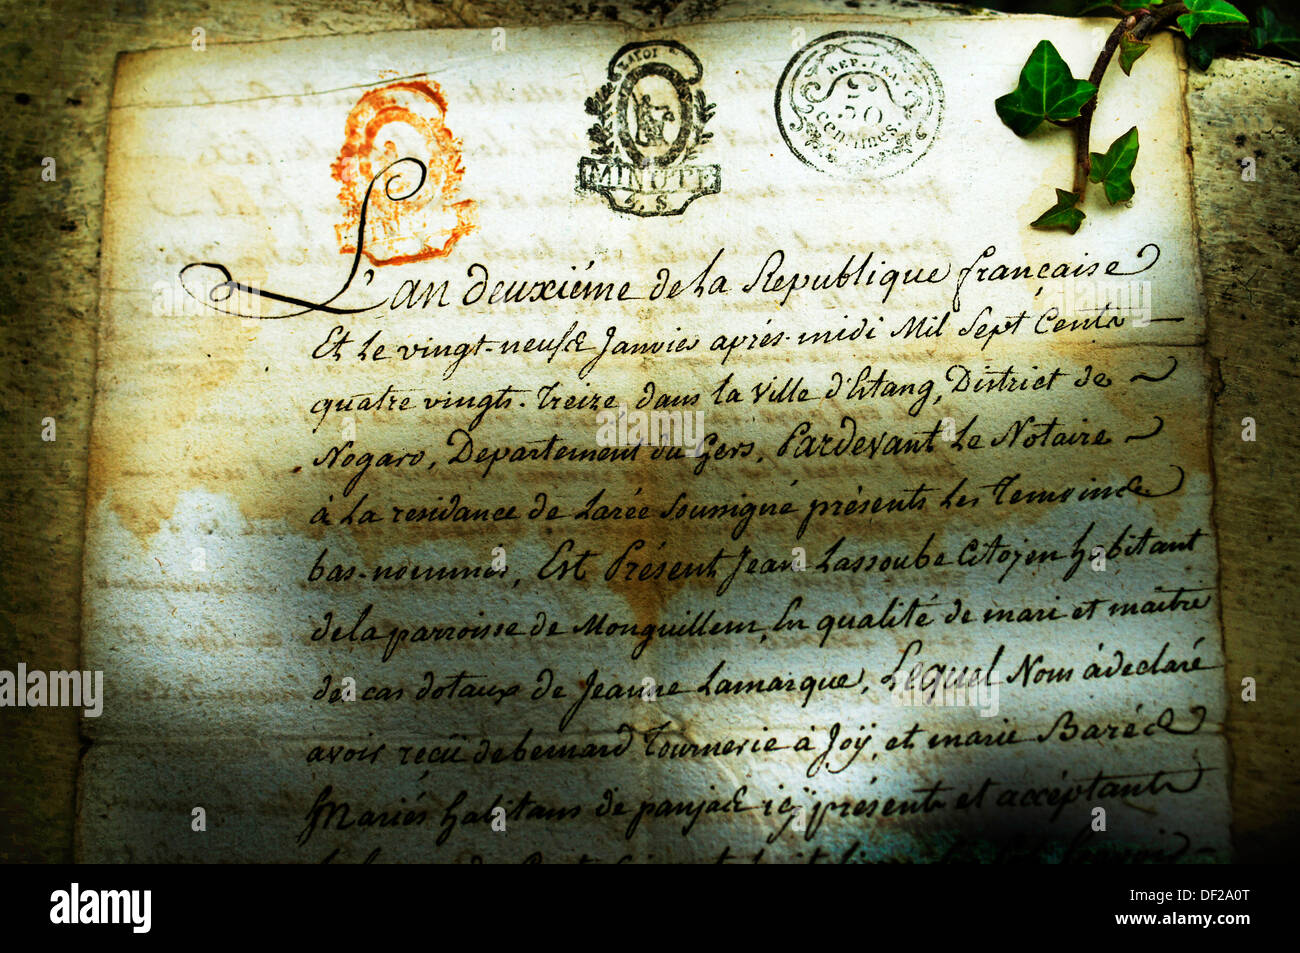 Official paper with the name of Joÿ from year 1793 (year II of the Republique), Domaine de Joÿ wines and armagnac estate at - Stock Image